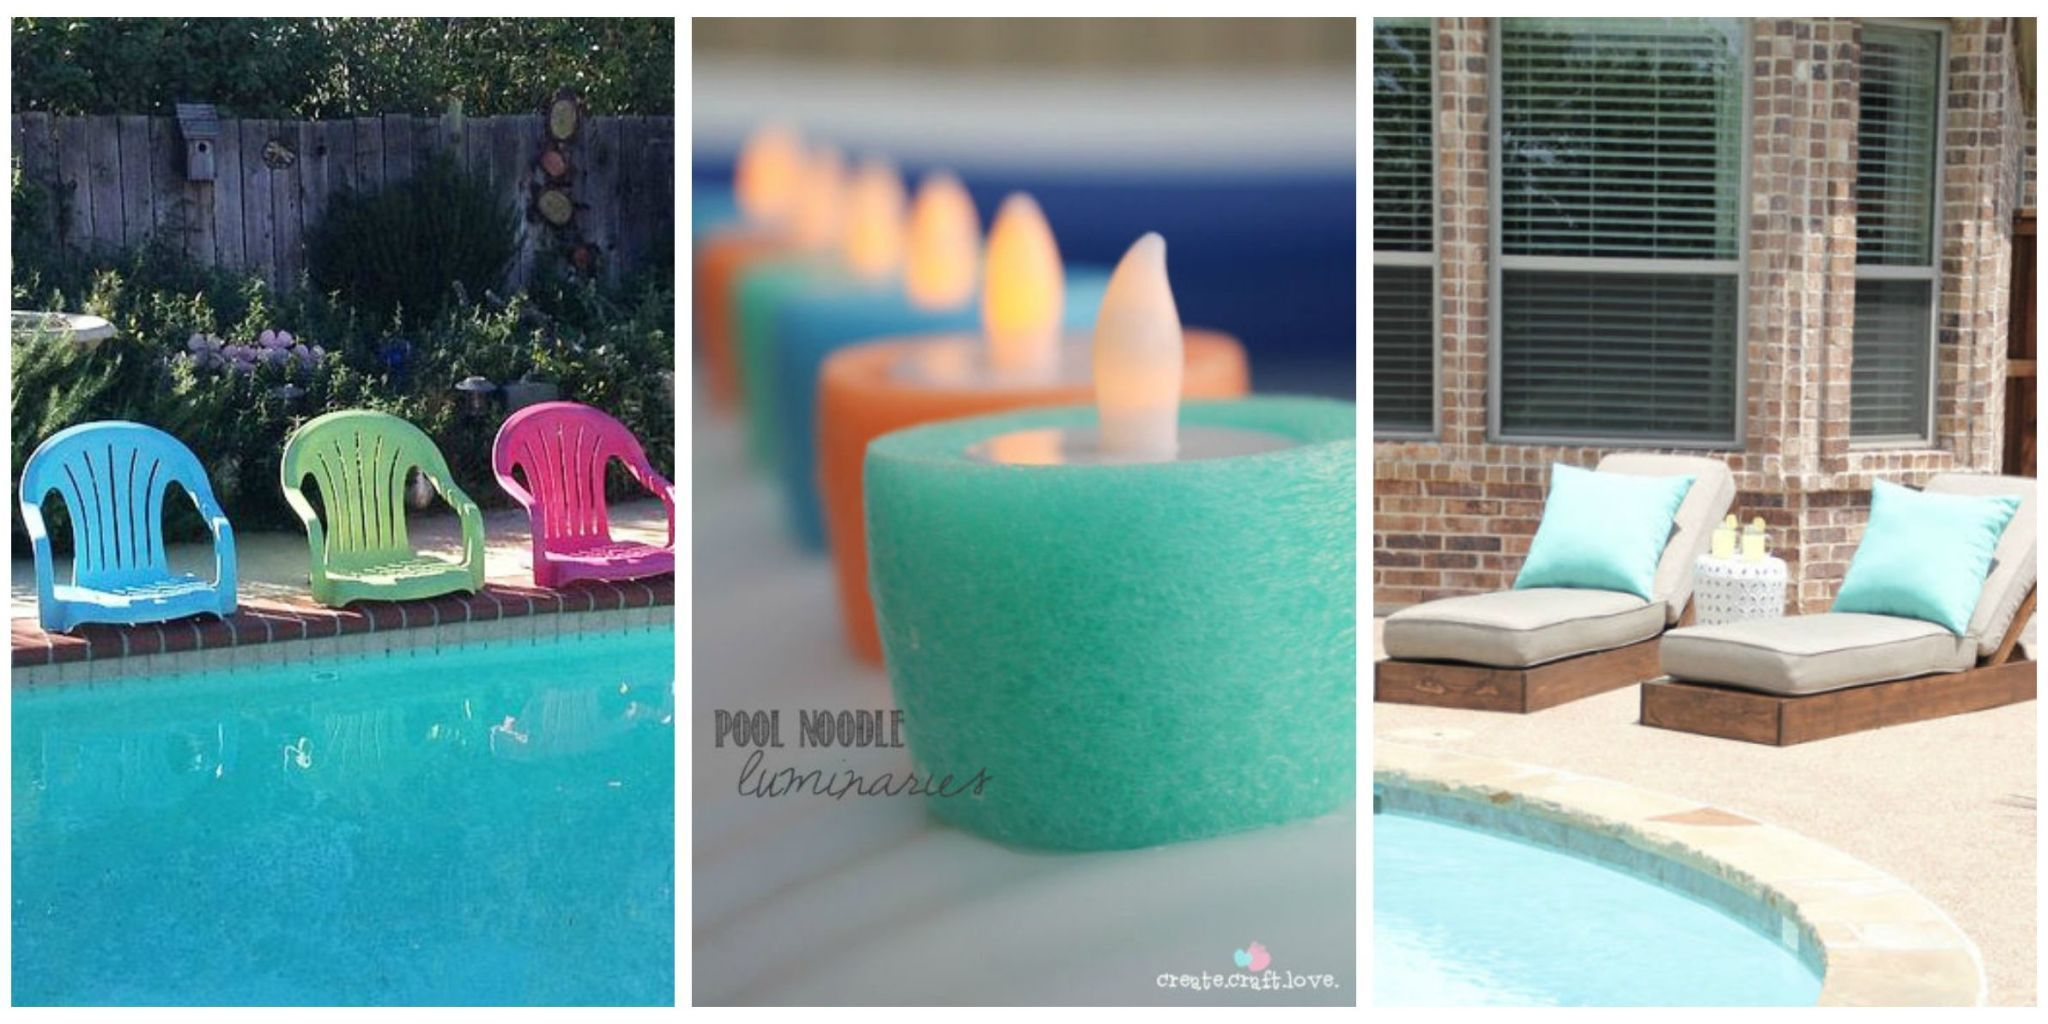 Incroyable These Ideas Will Make Your Pool The Hottest Spot On The Block.